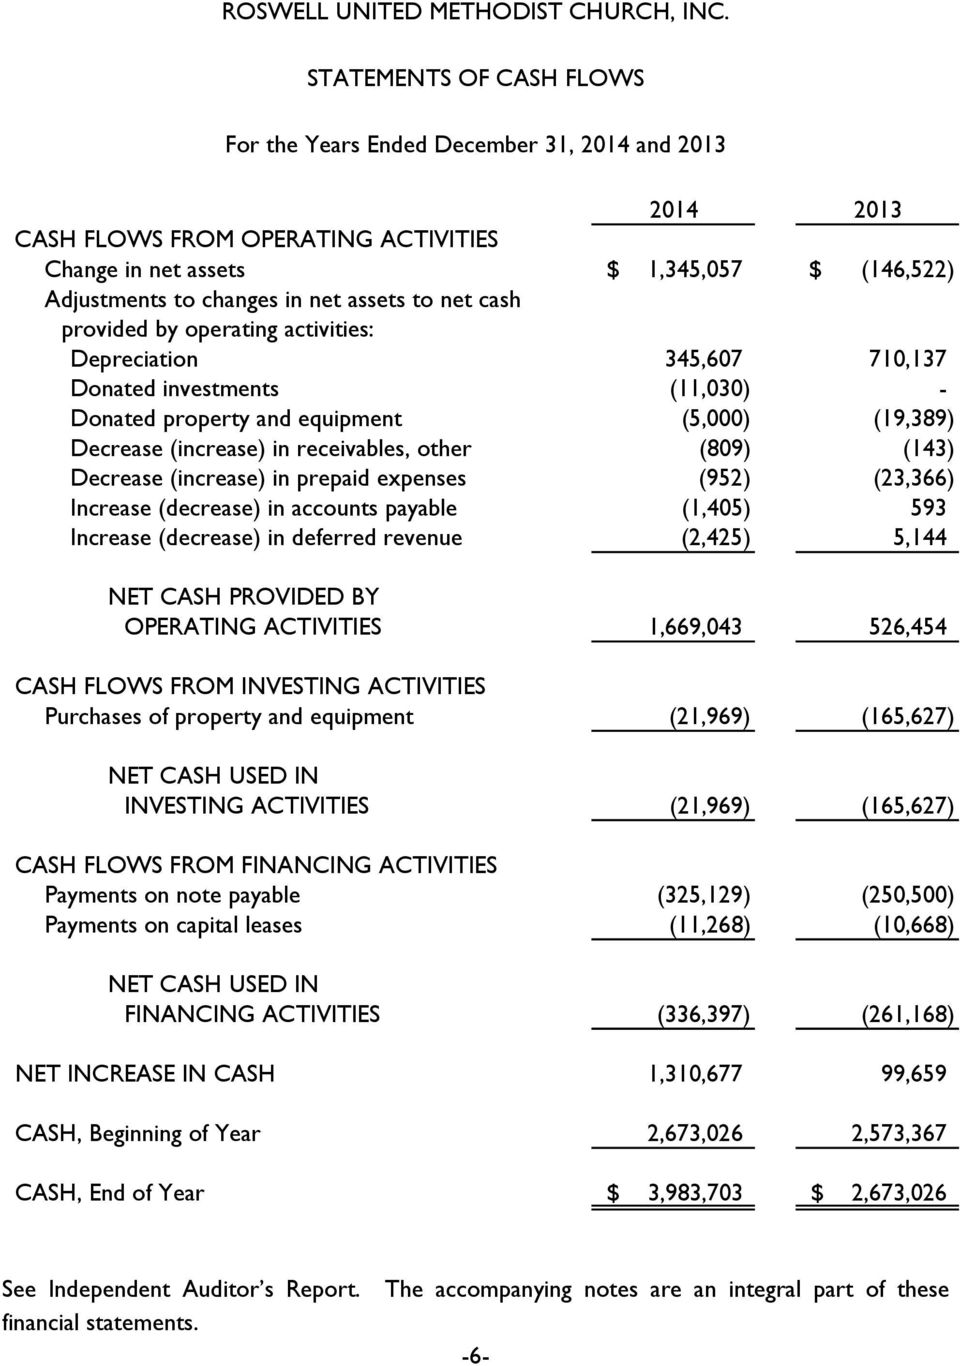 expenses (952) (23,366) Increase (decrease) in accounts payable (1,405) 593 Increase (decrease) in deferred revenue (2,425) 5,144 NET CASH PROVIDED BY OPERATING ACTIVITIES 1,669,043 526,454 CASH